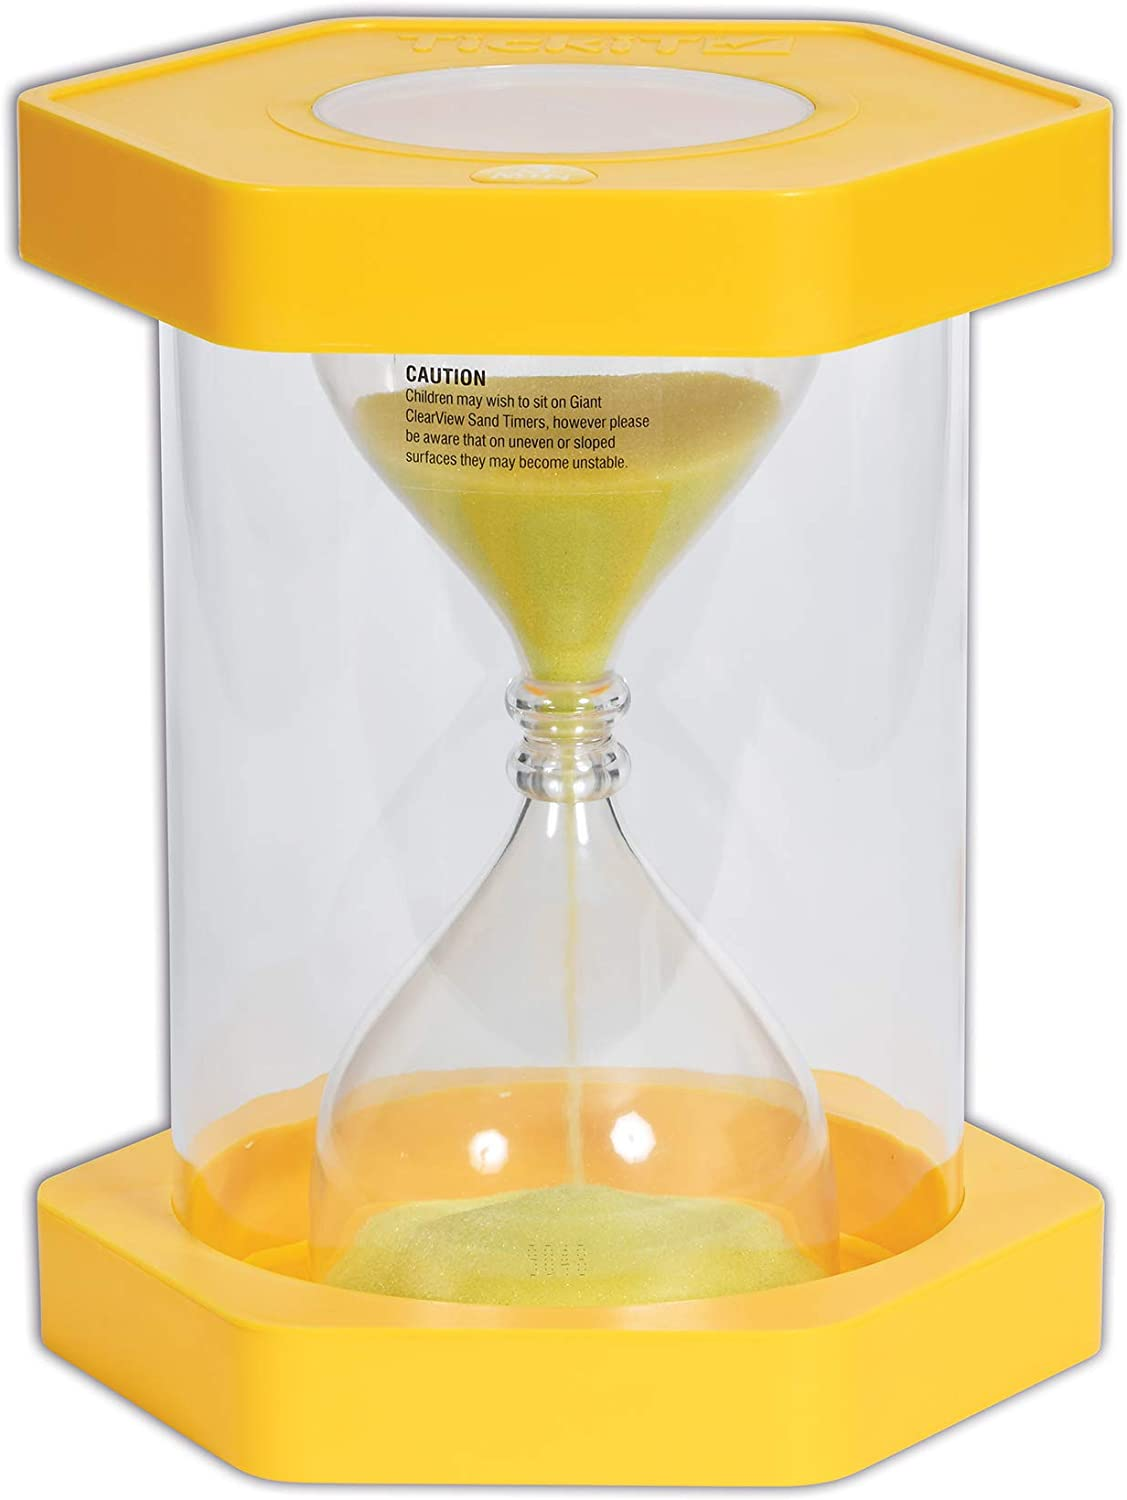 TickiT 92030 Giant Clearview Sand Timer, 3 minutes, 270 mm Diameter, Yellow